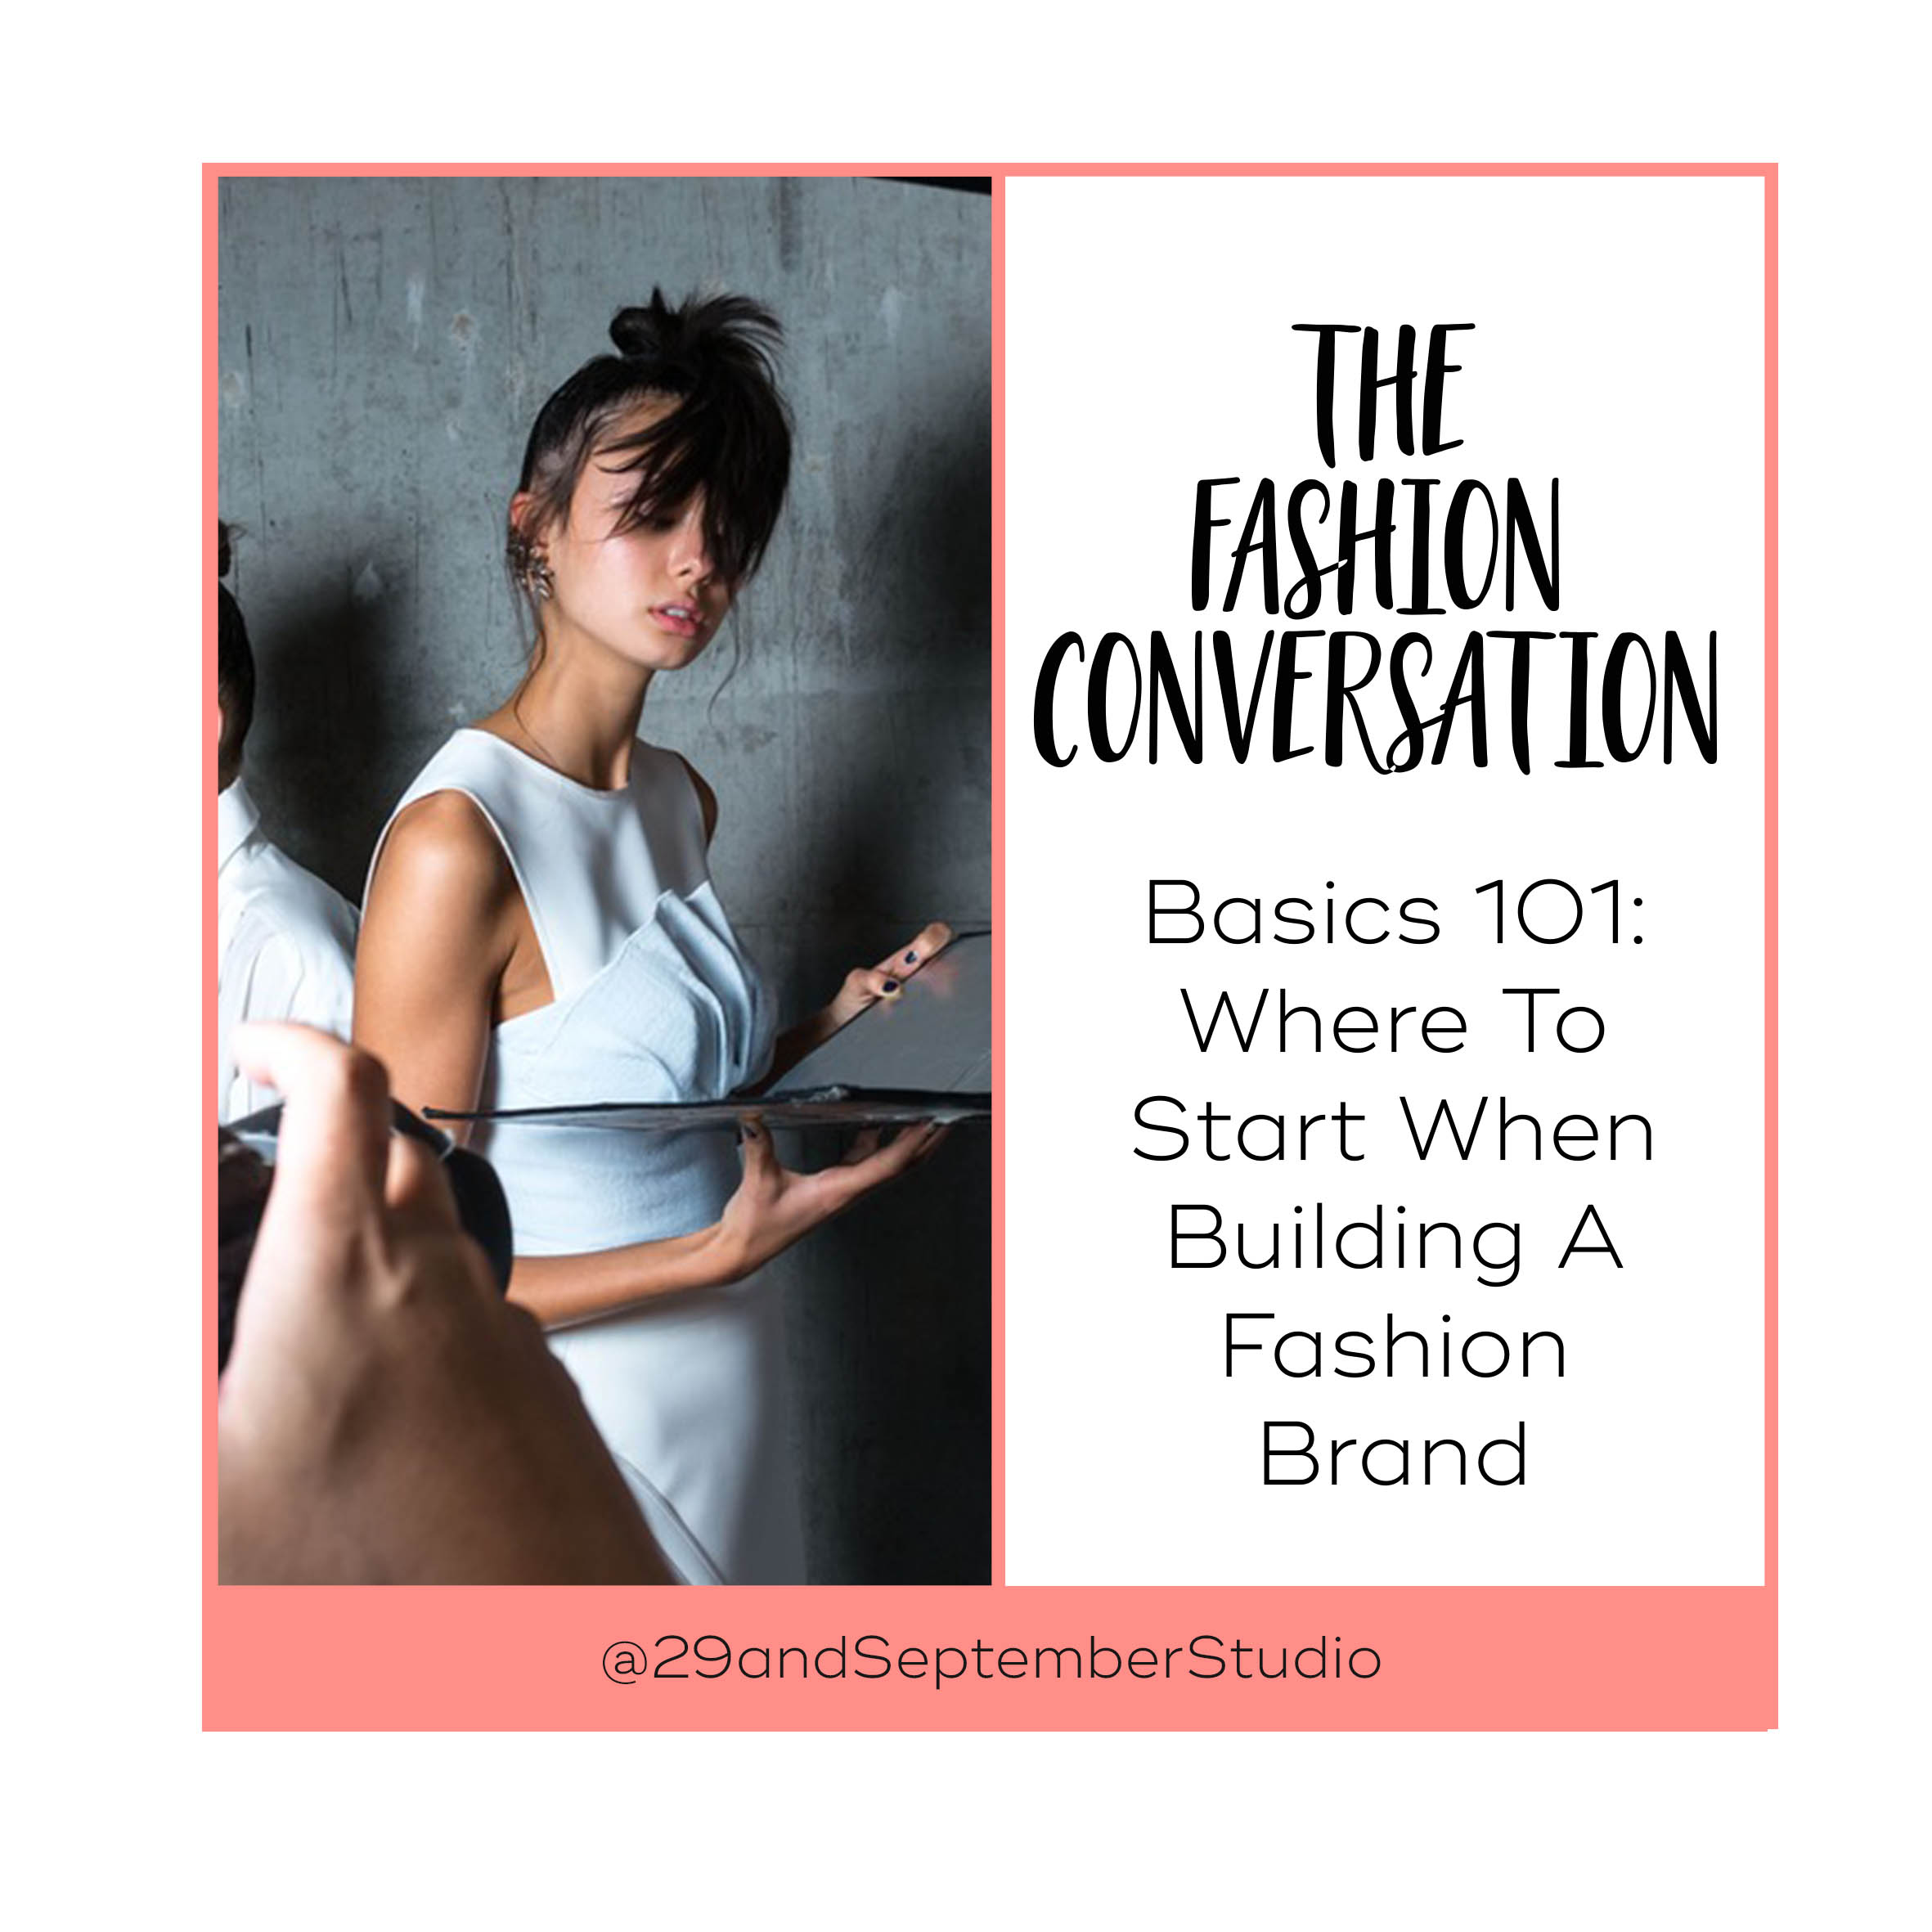 Basics 101: Where To Start When Building A Fashion Brand - feature on The Fashion Conversation